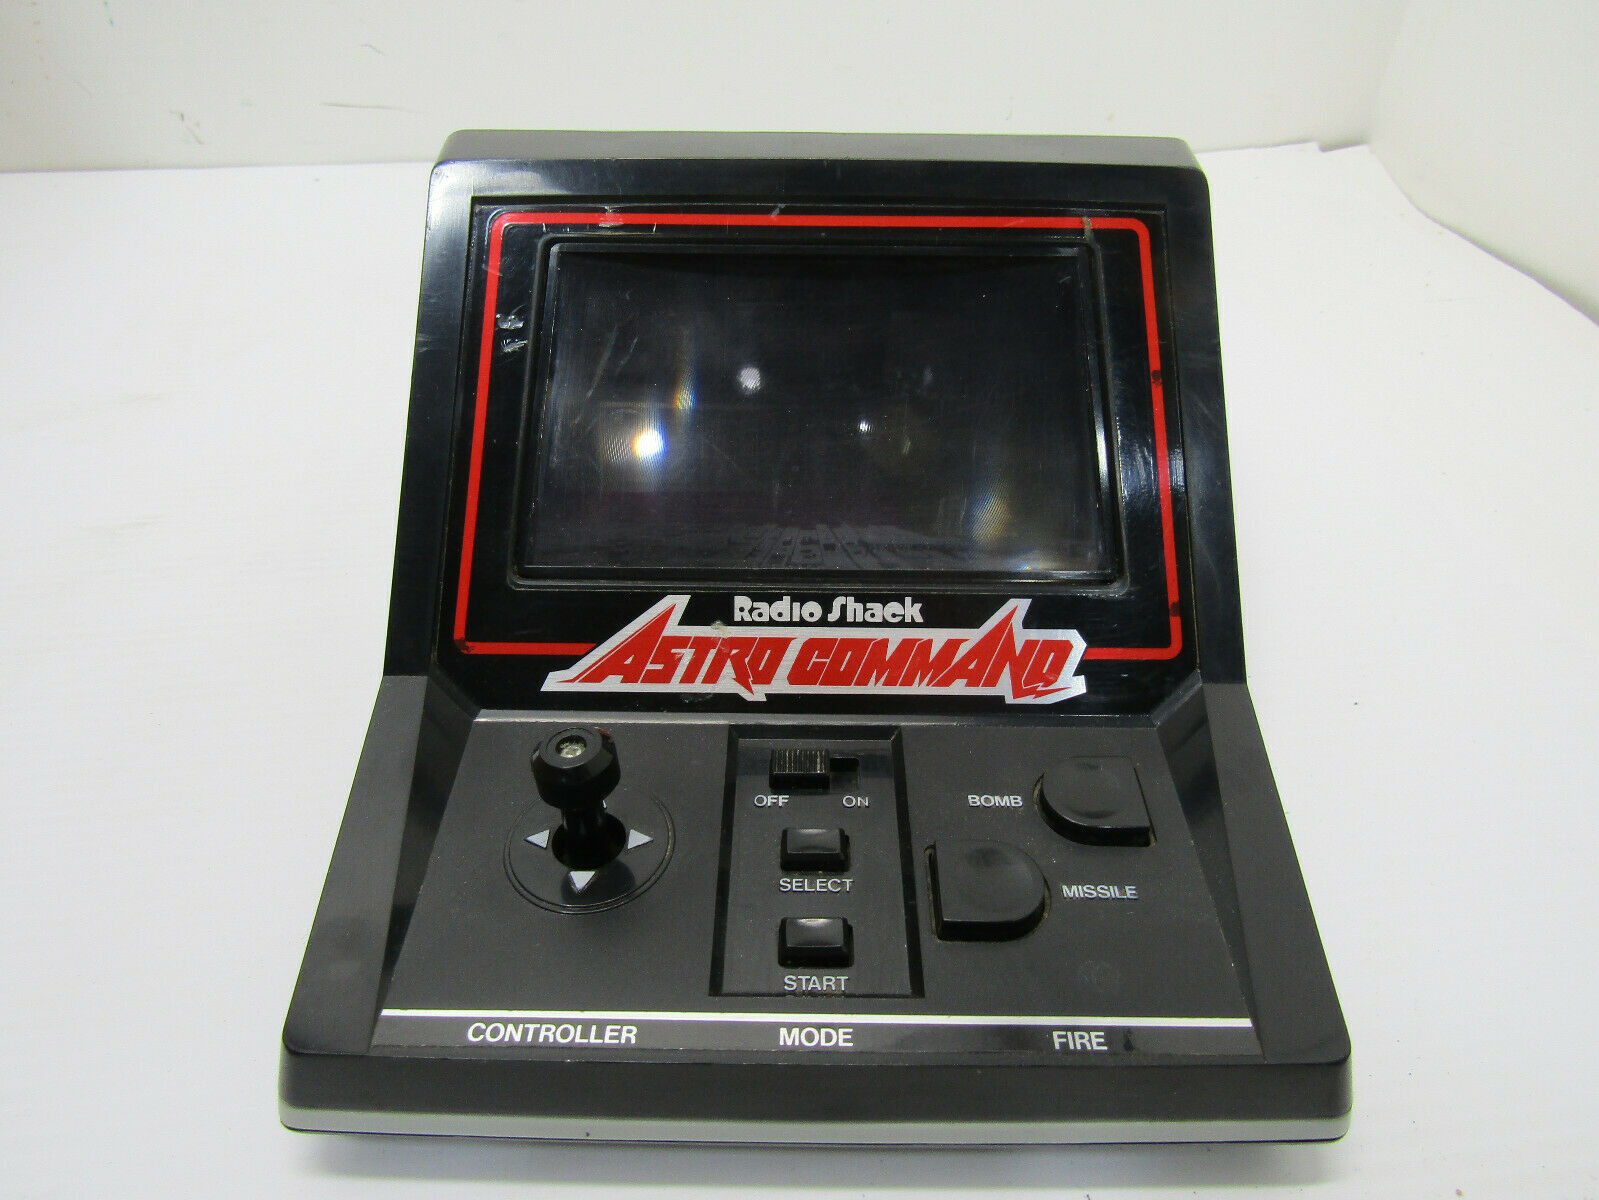 VINTAGE HAND HELD ELECTRONIC ASTRO COMMAND GAME ARCADE GAME WORKS